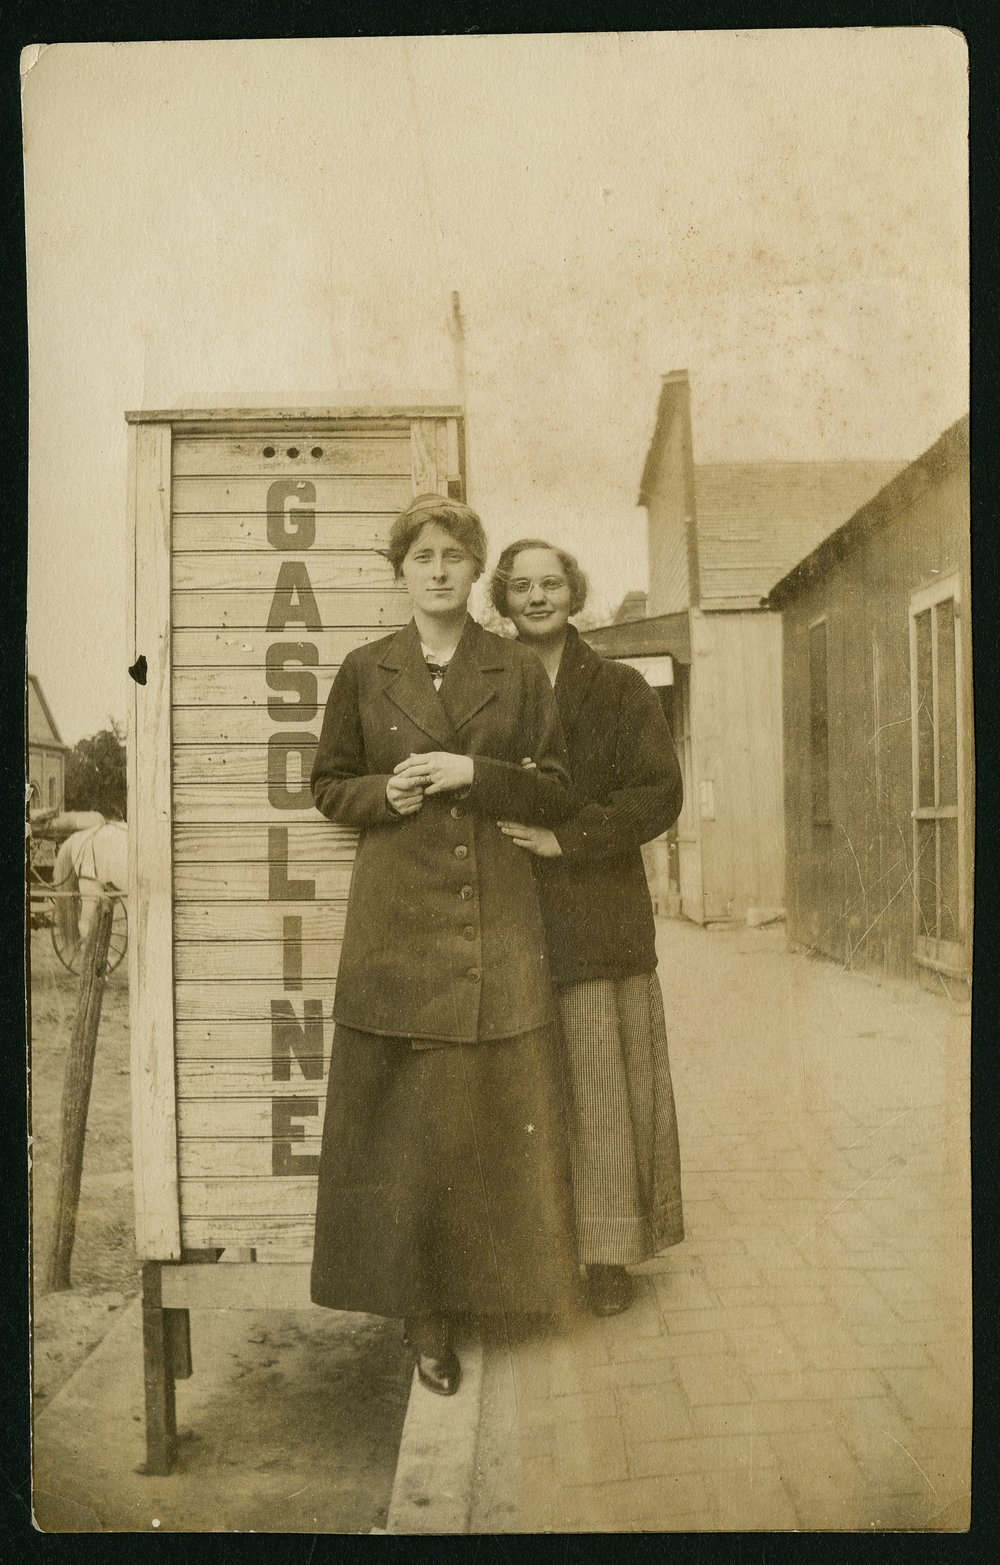 Doris Turner and Ruth Newby standing by a gasoline pump in Mount Hope, Kansas - 1